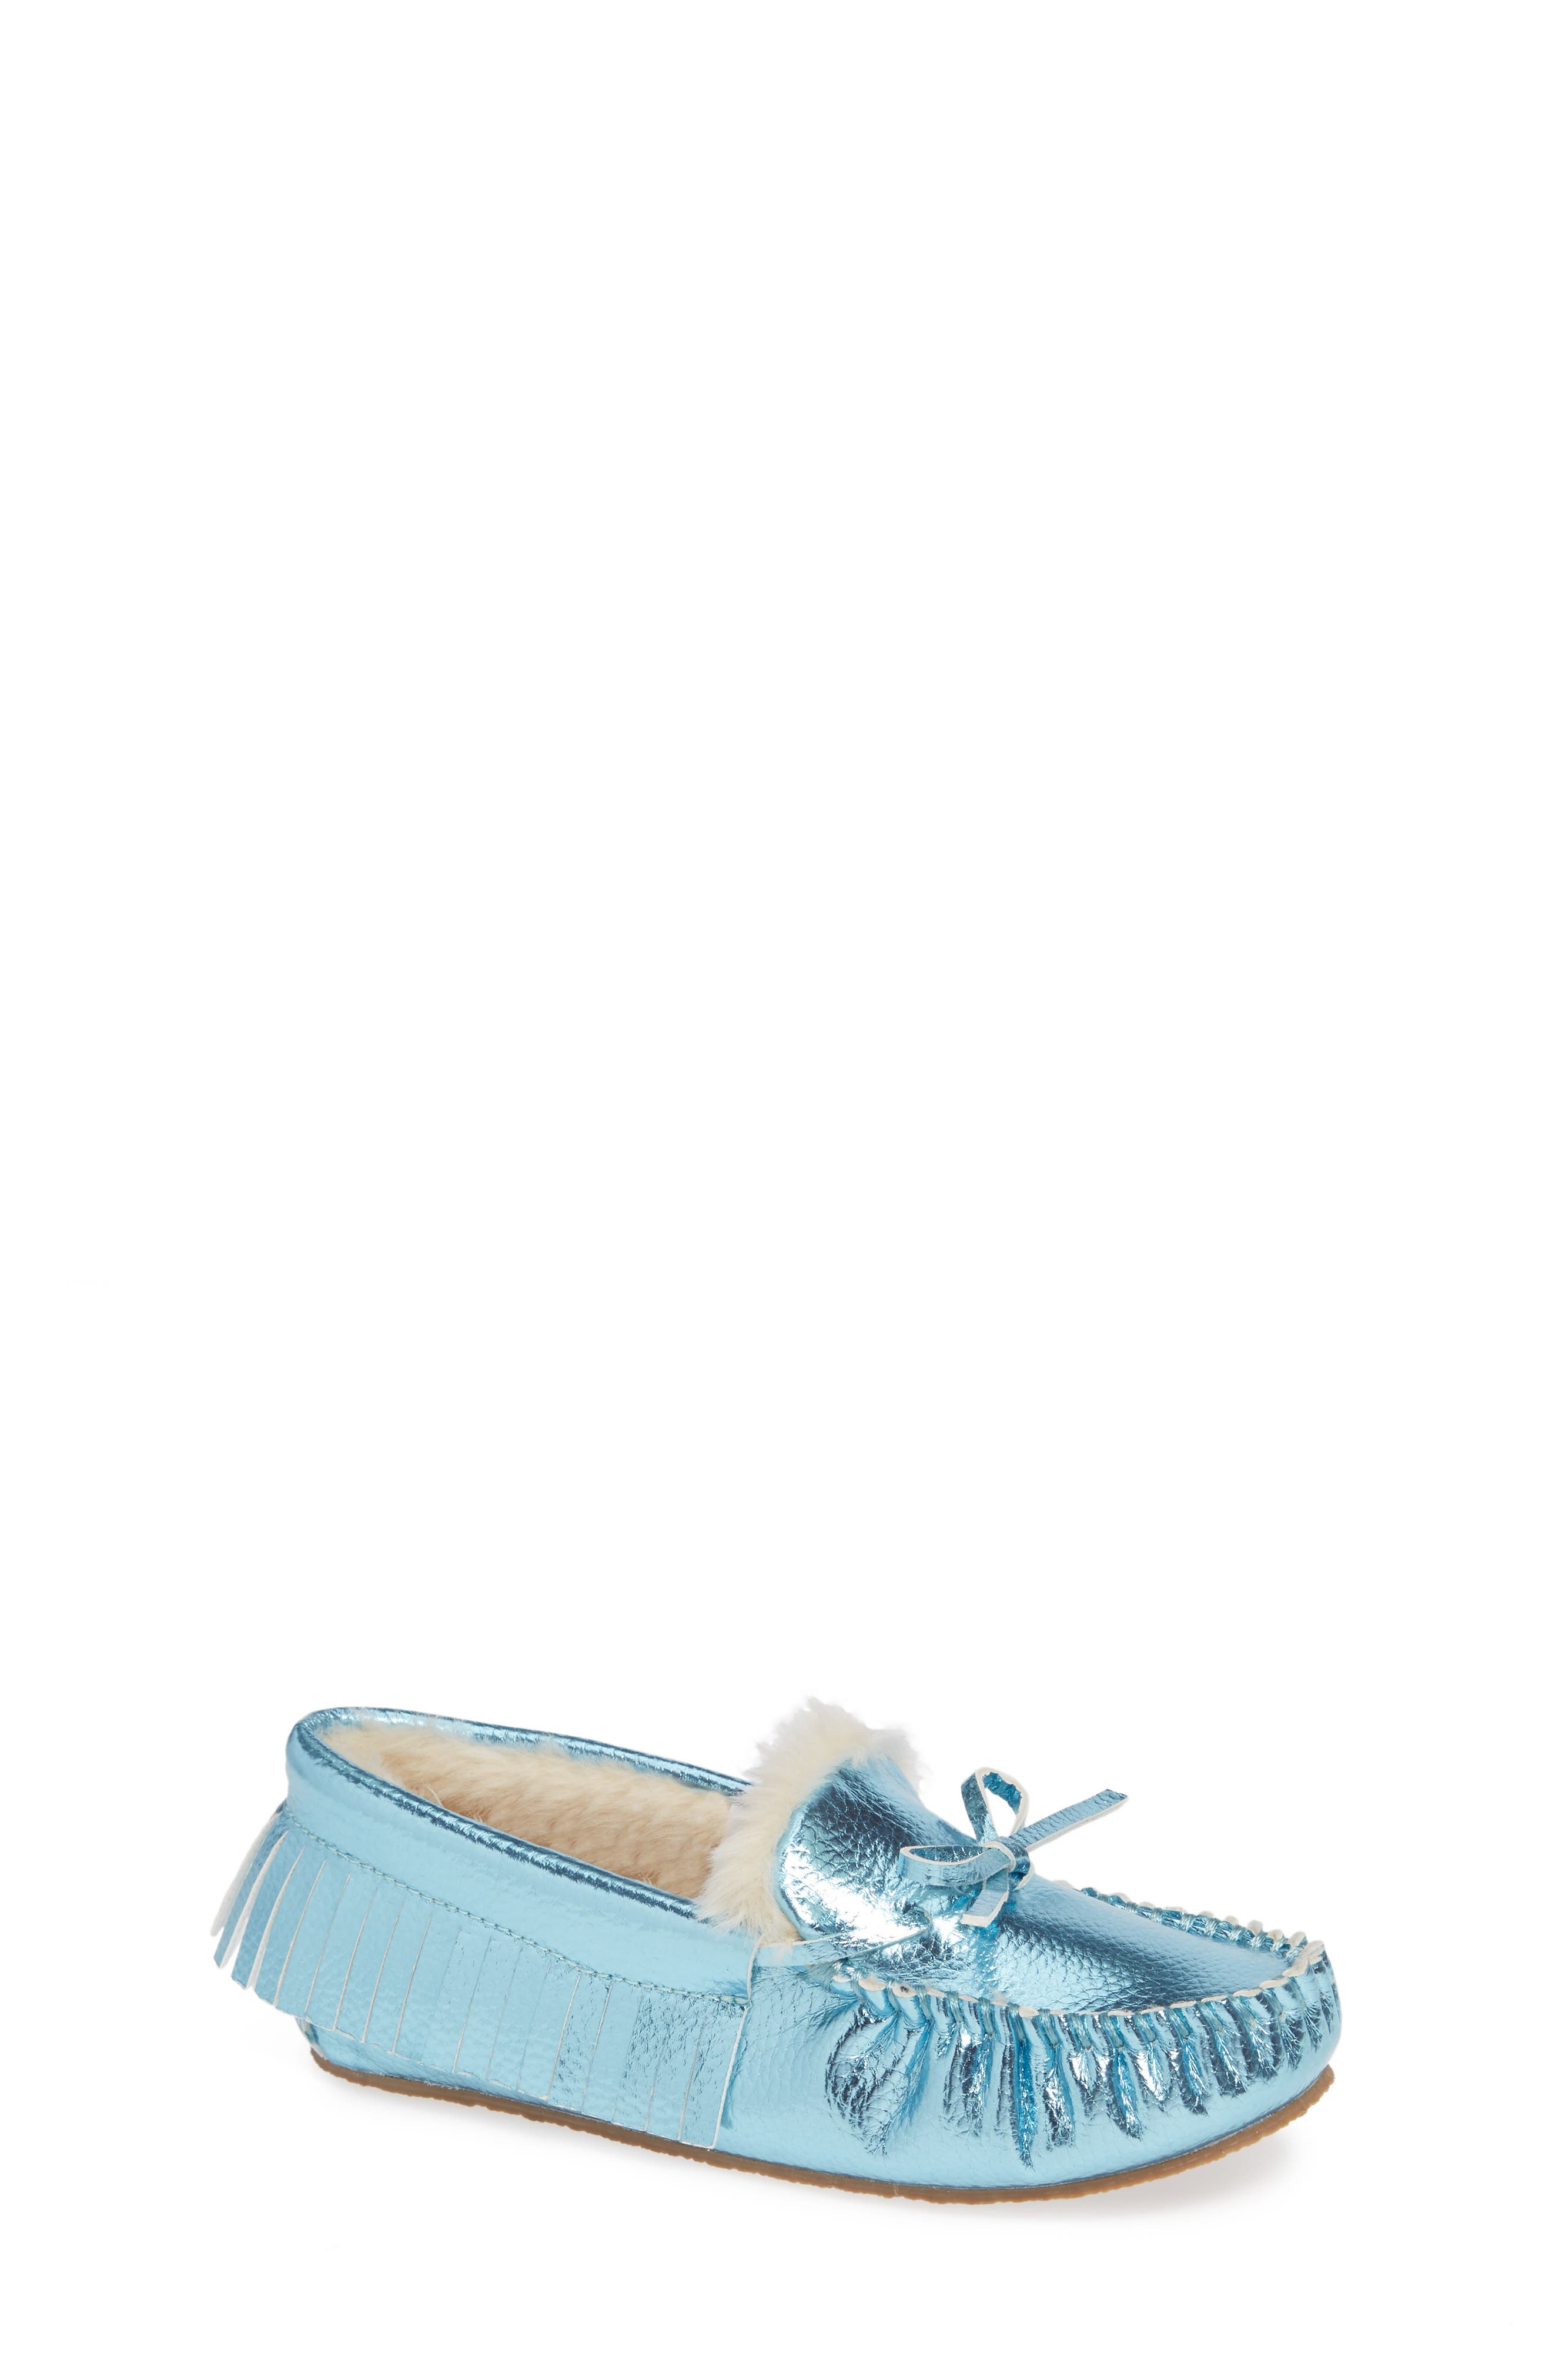 CREWCUTS BY J.CREW Metallic Moccasin, Main, color, FADED SKY